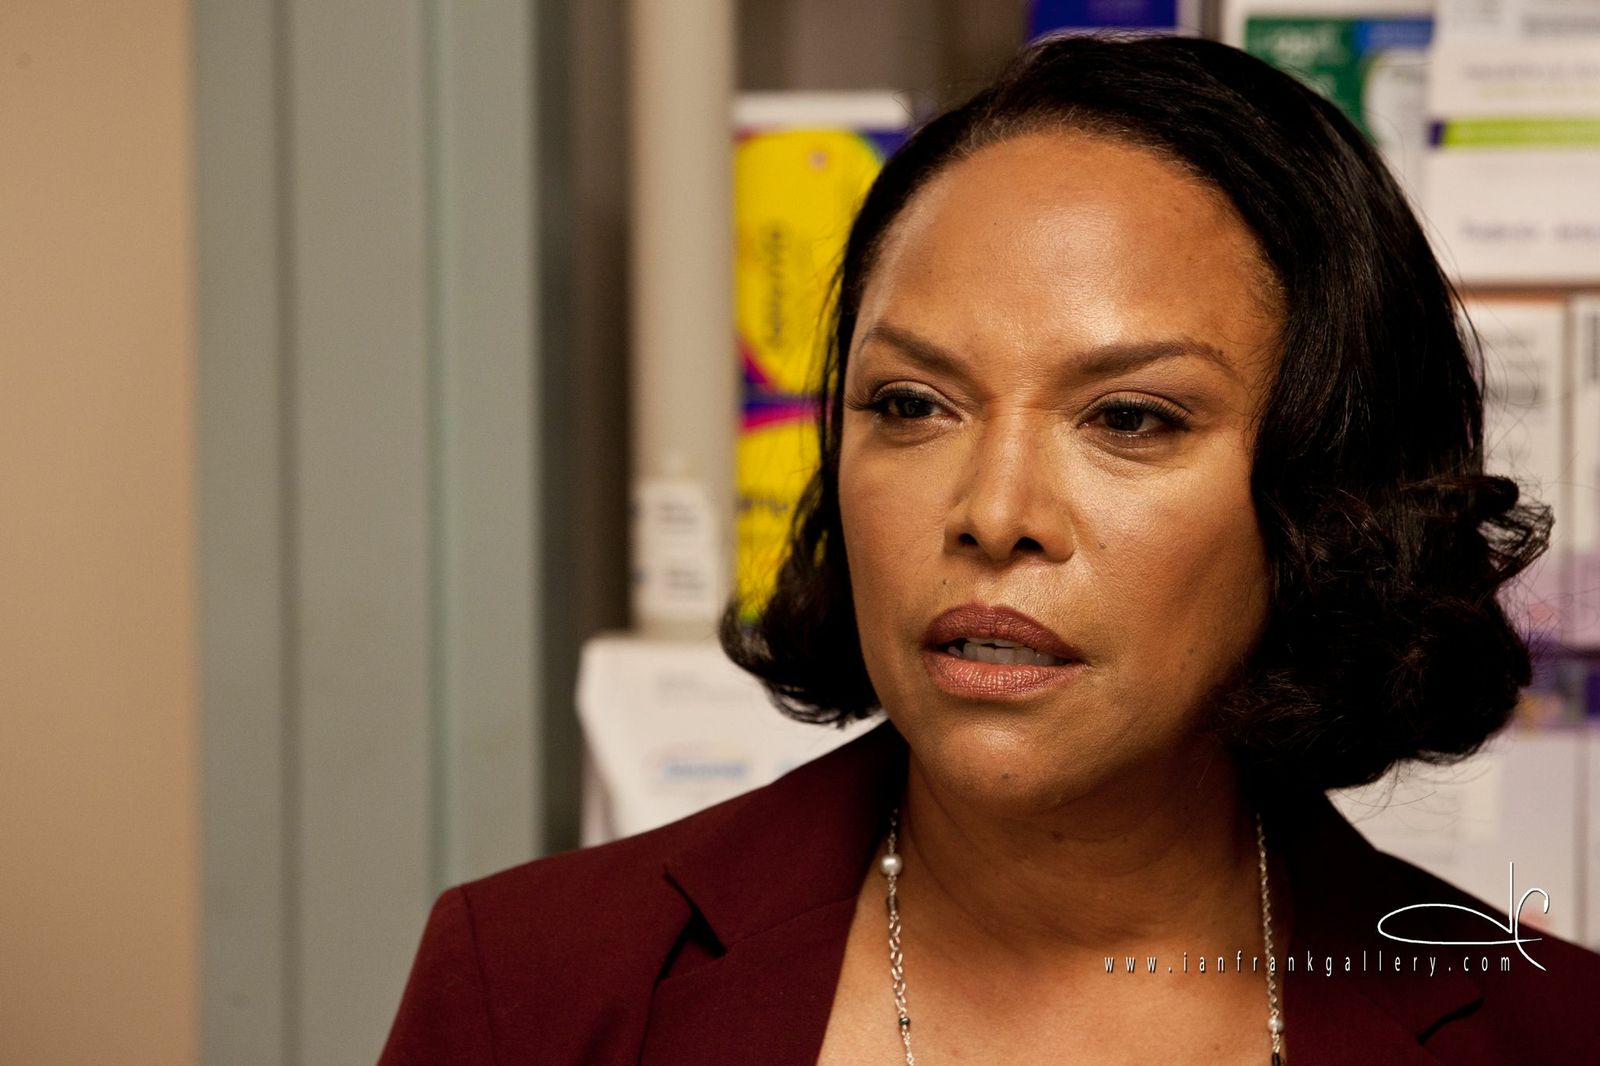 Forum on this topic: Charlotte Newhouse, lynn-whitfield/